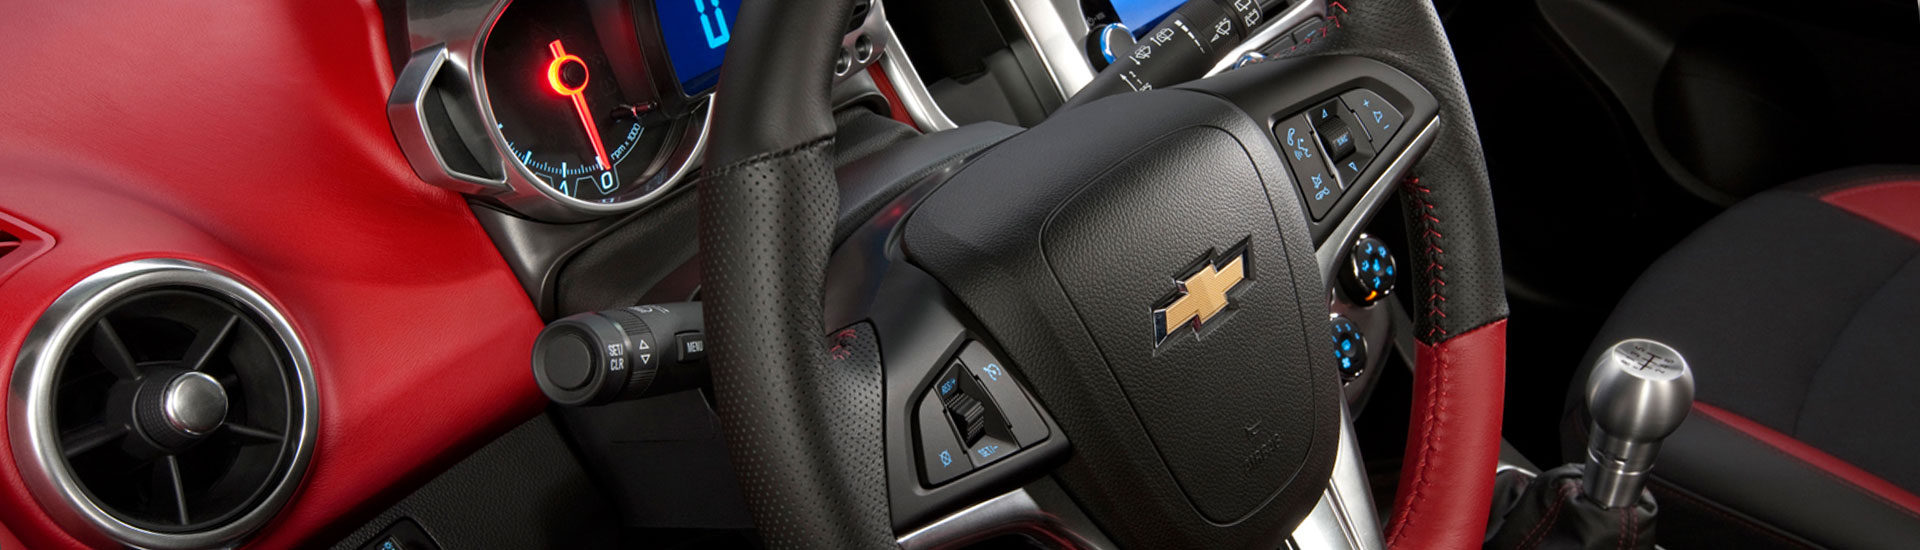 2015 Chevrolet Tahoe Dash Kits